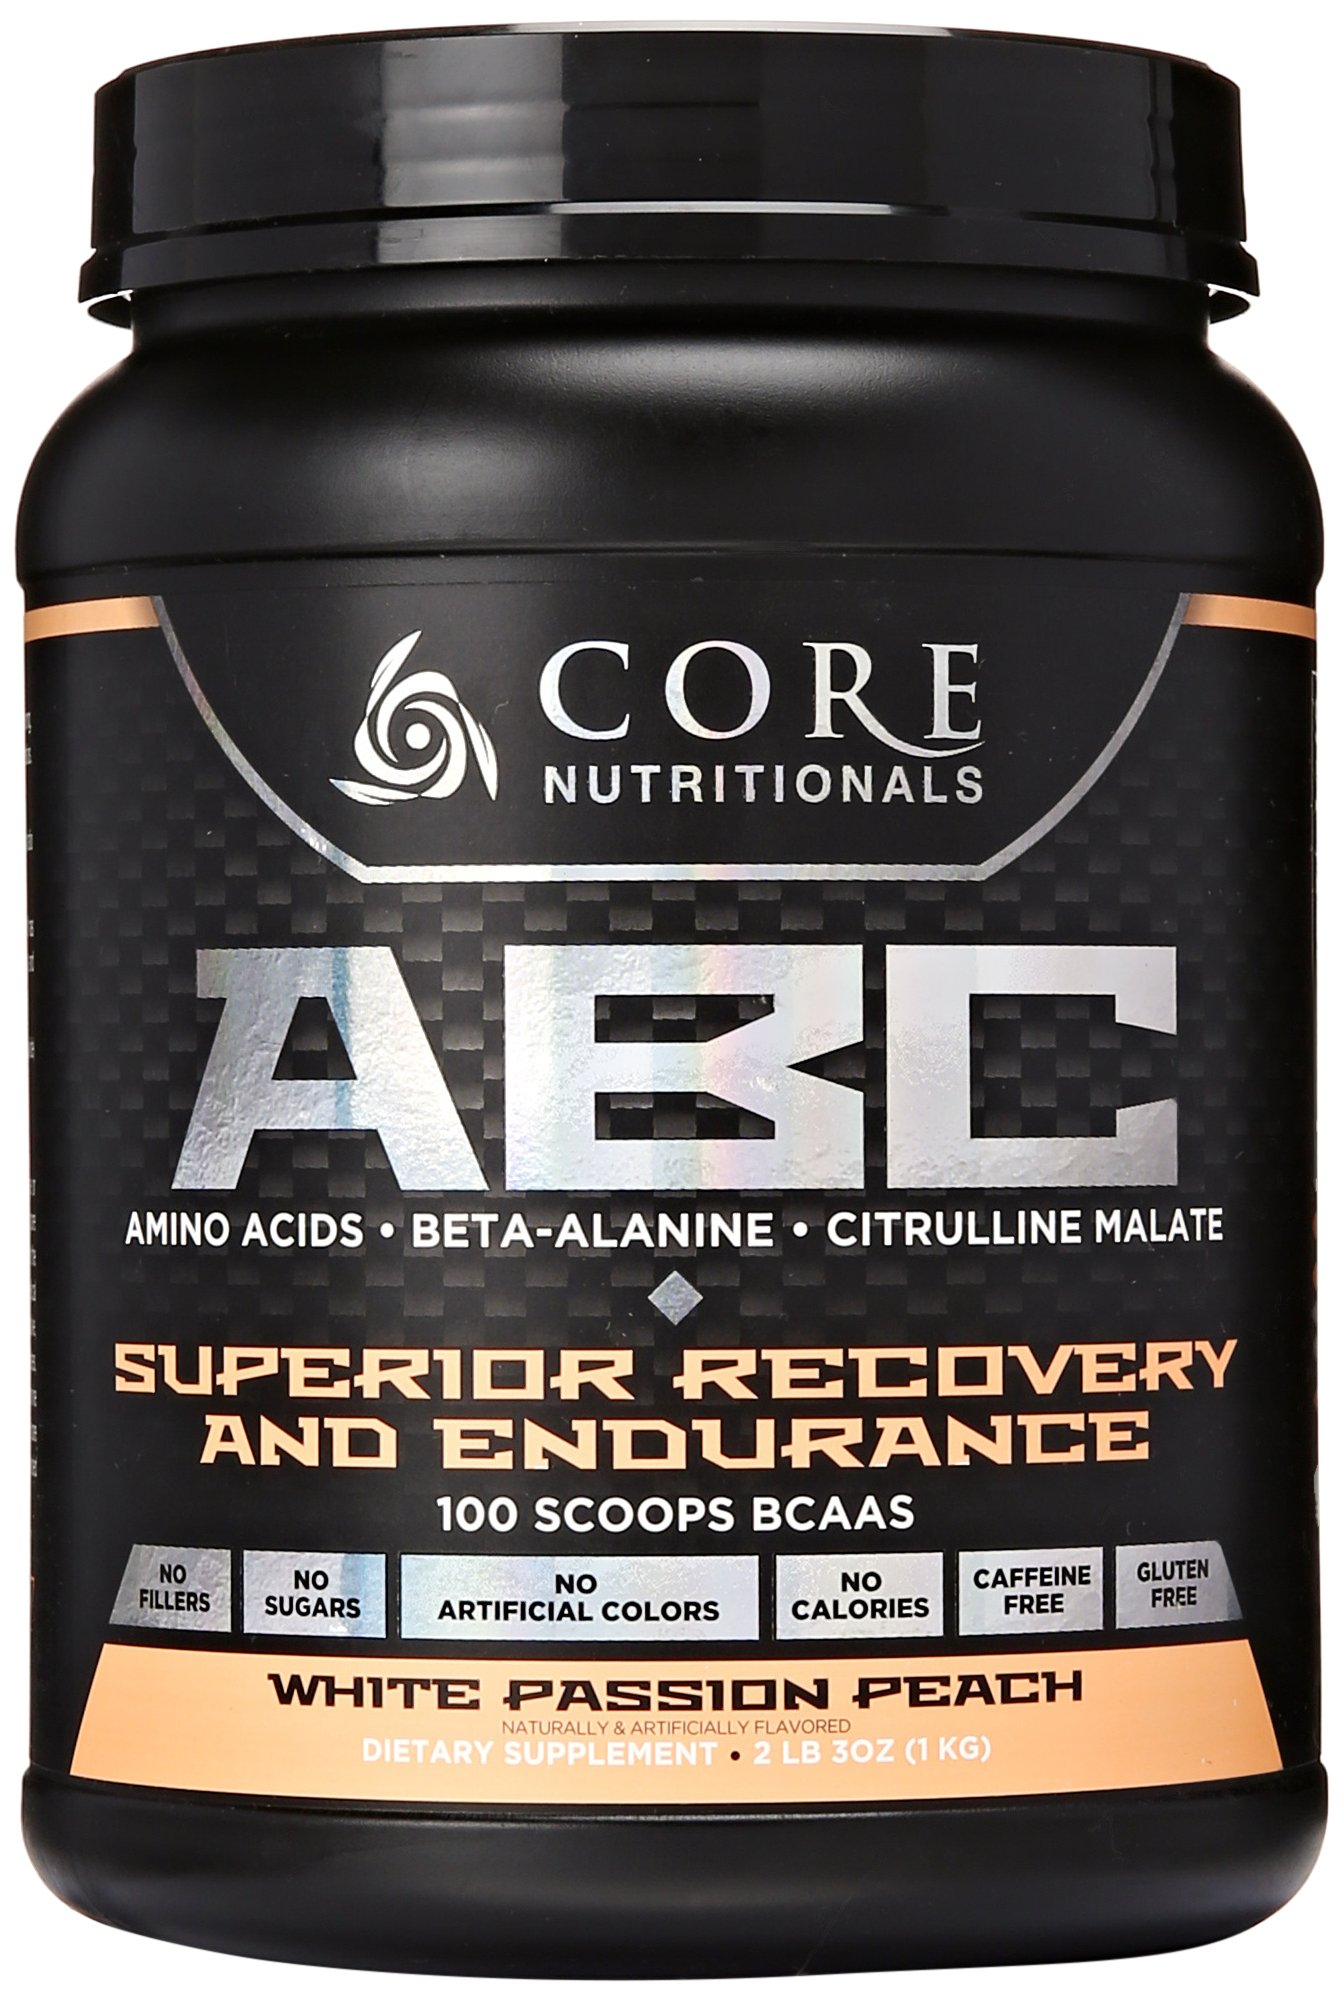 Core Nutritionals ABC Pre-Workout Supplement, White Passion Peach, 2 lb. 3 oz.